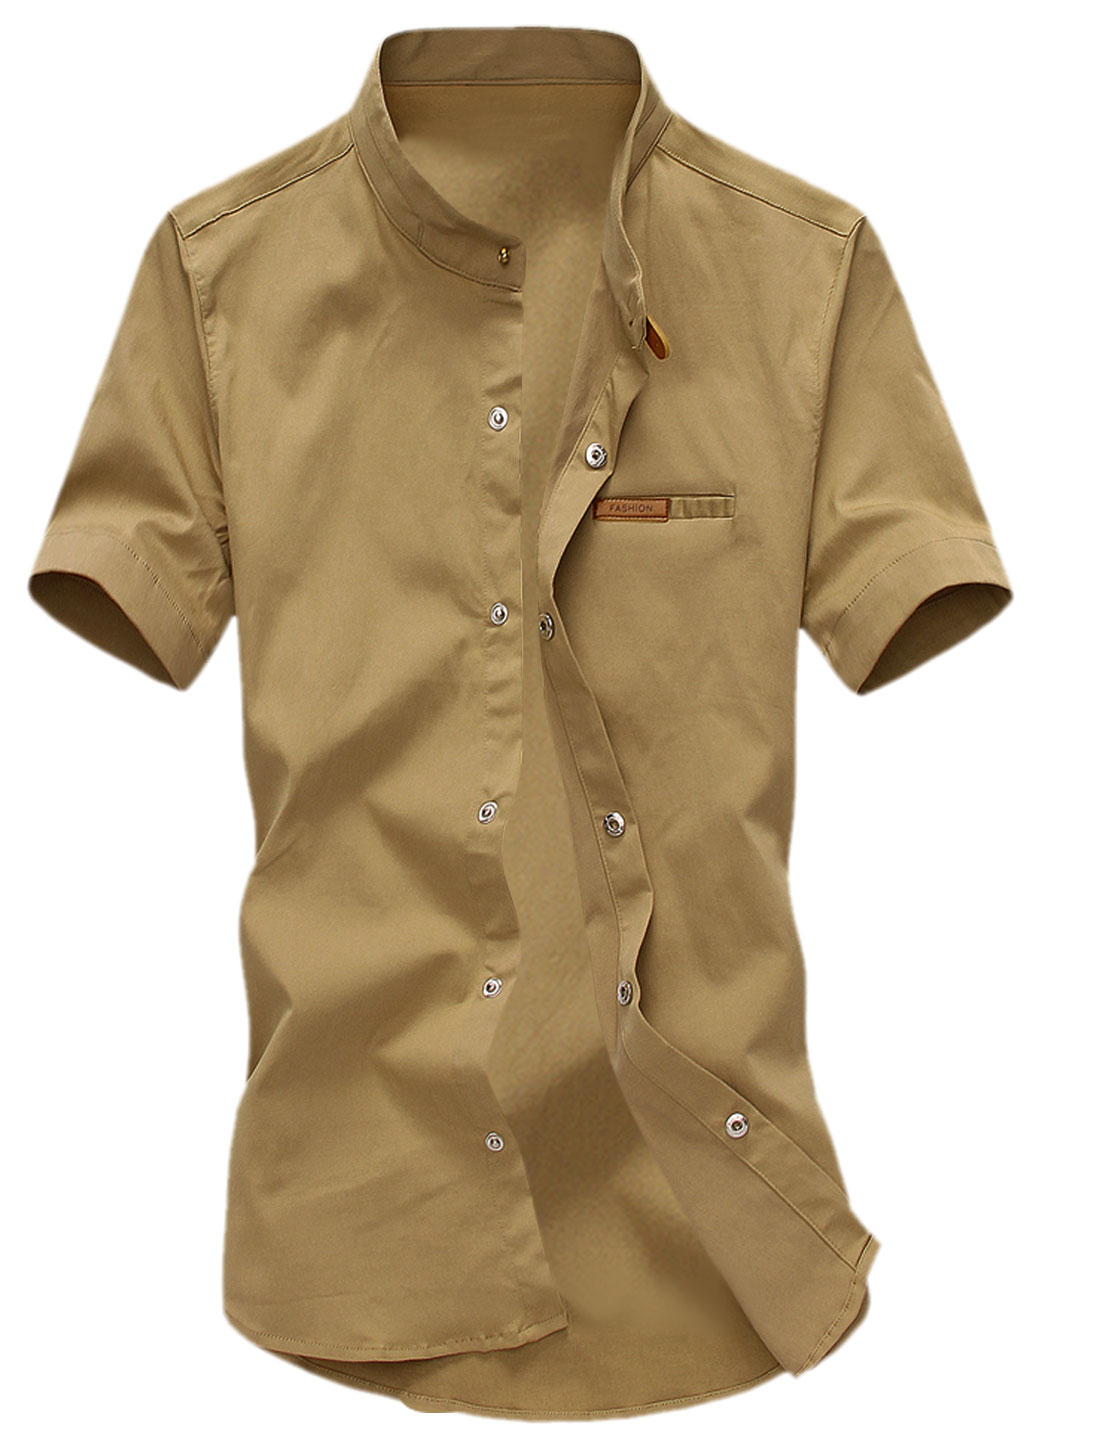 Men Stand Collar Snap Fastener Up Short Sleeves Casual Shirts Khaki M